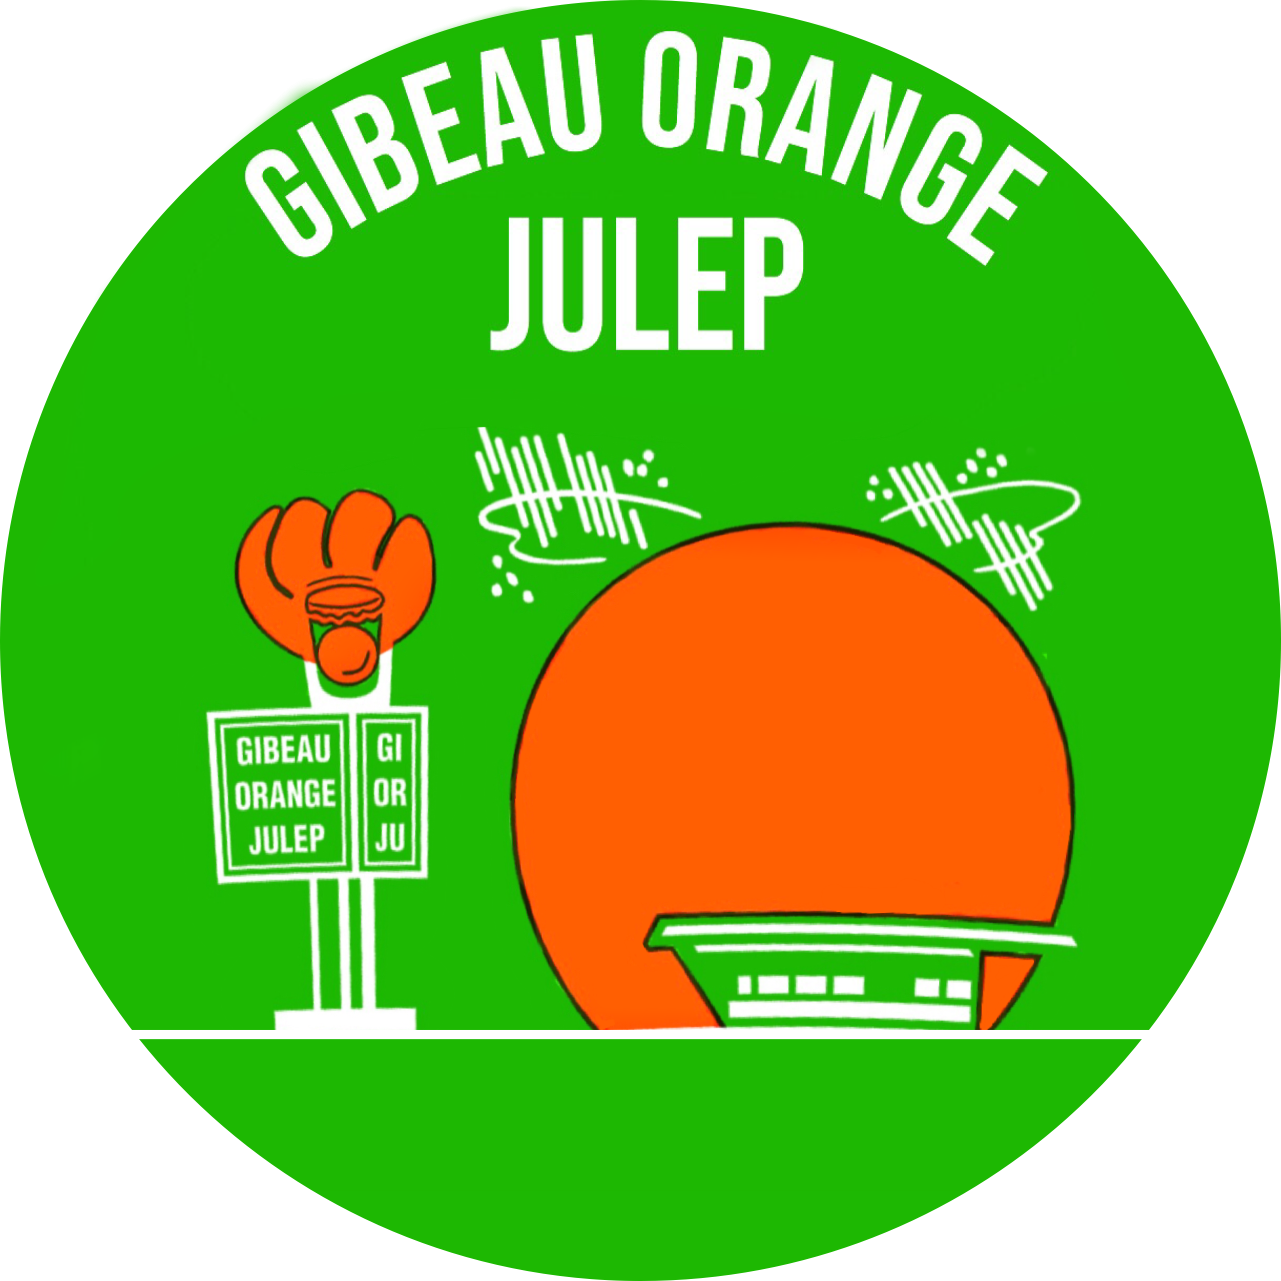 GIBEAU ORANGE JULEP